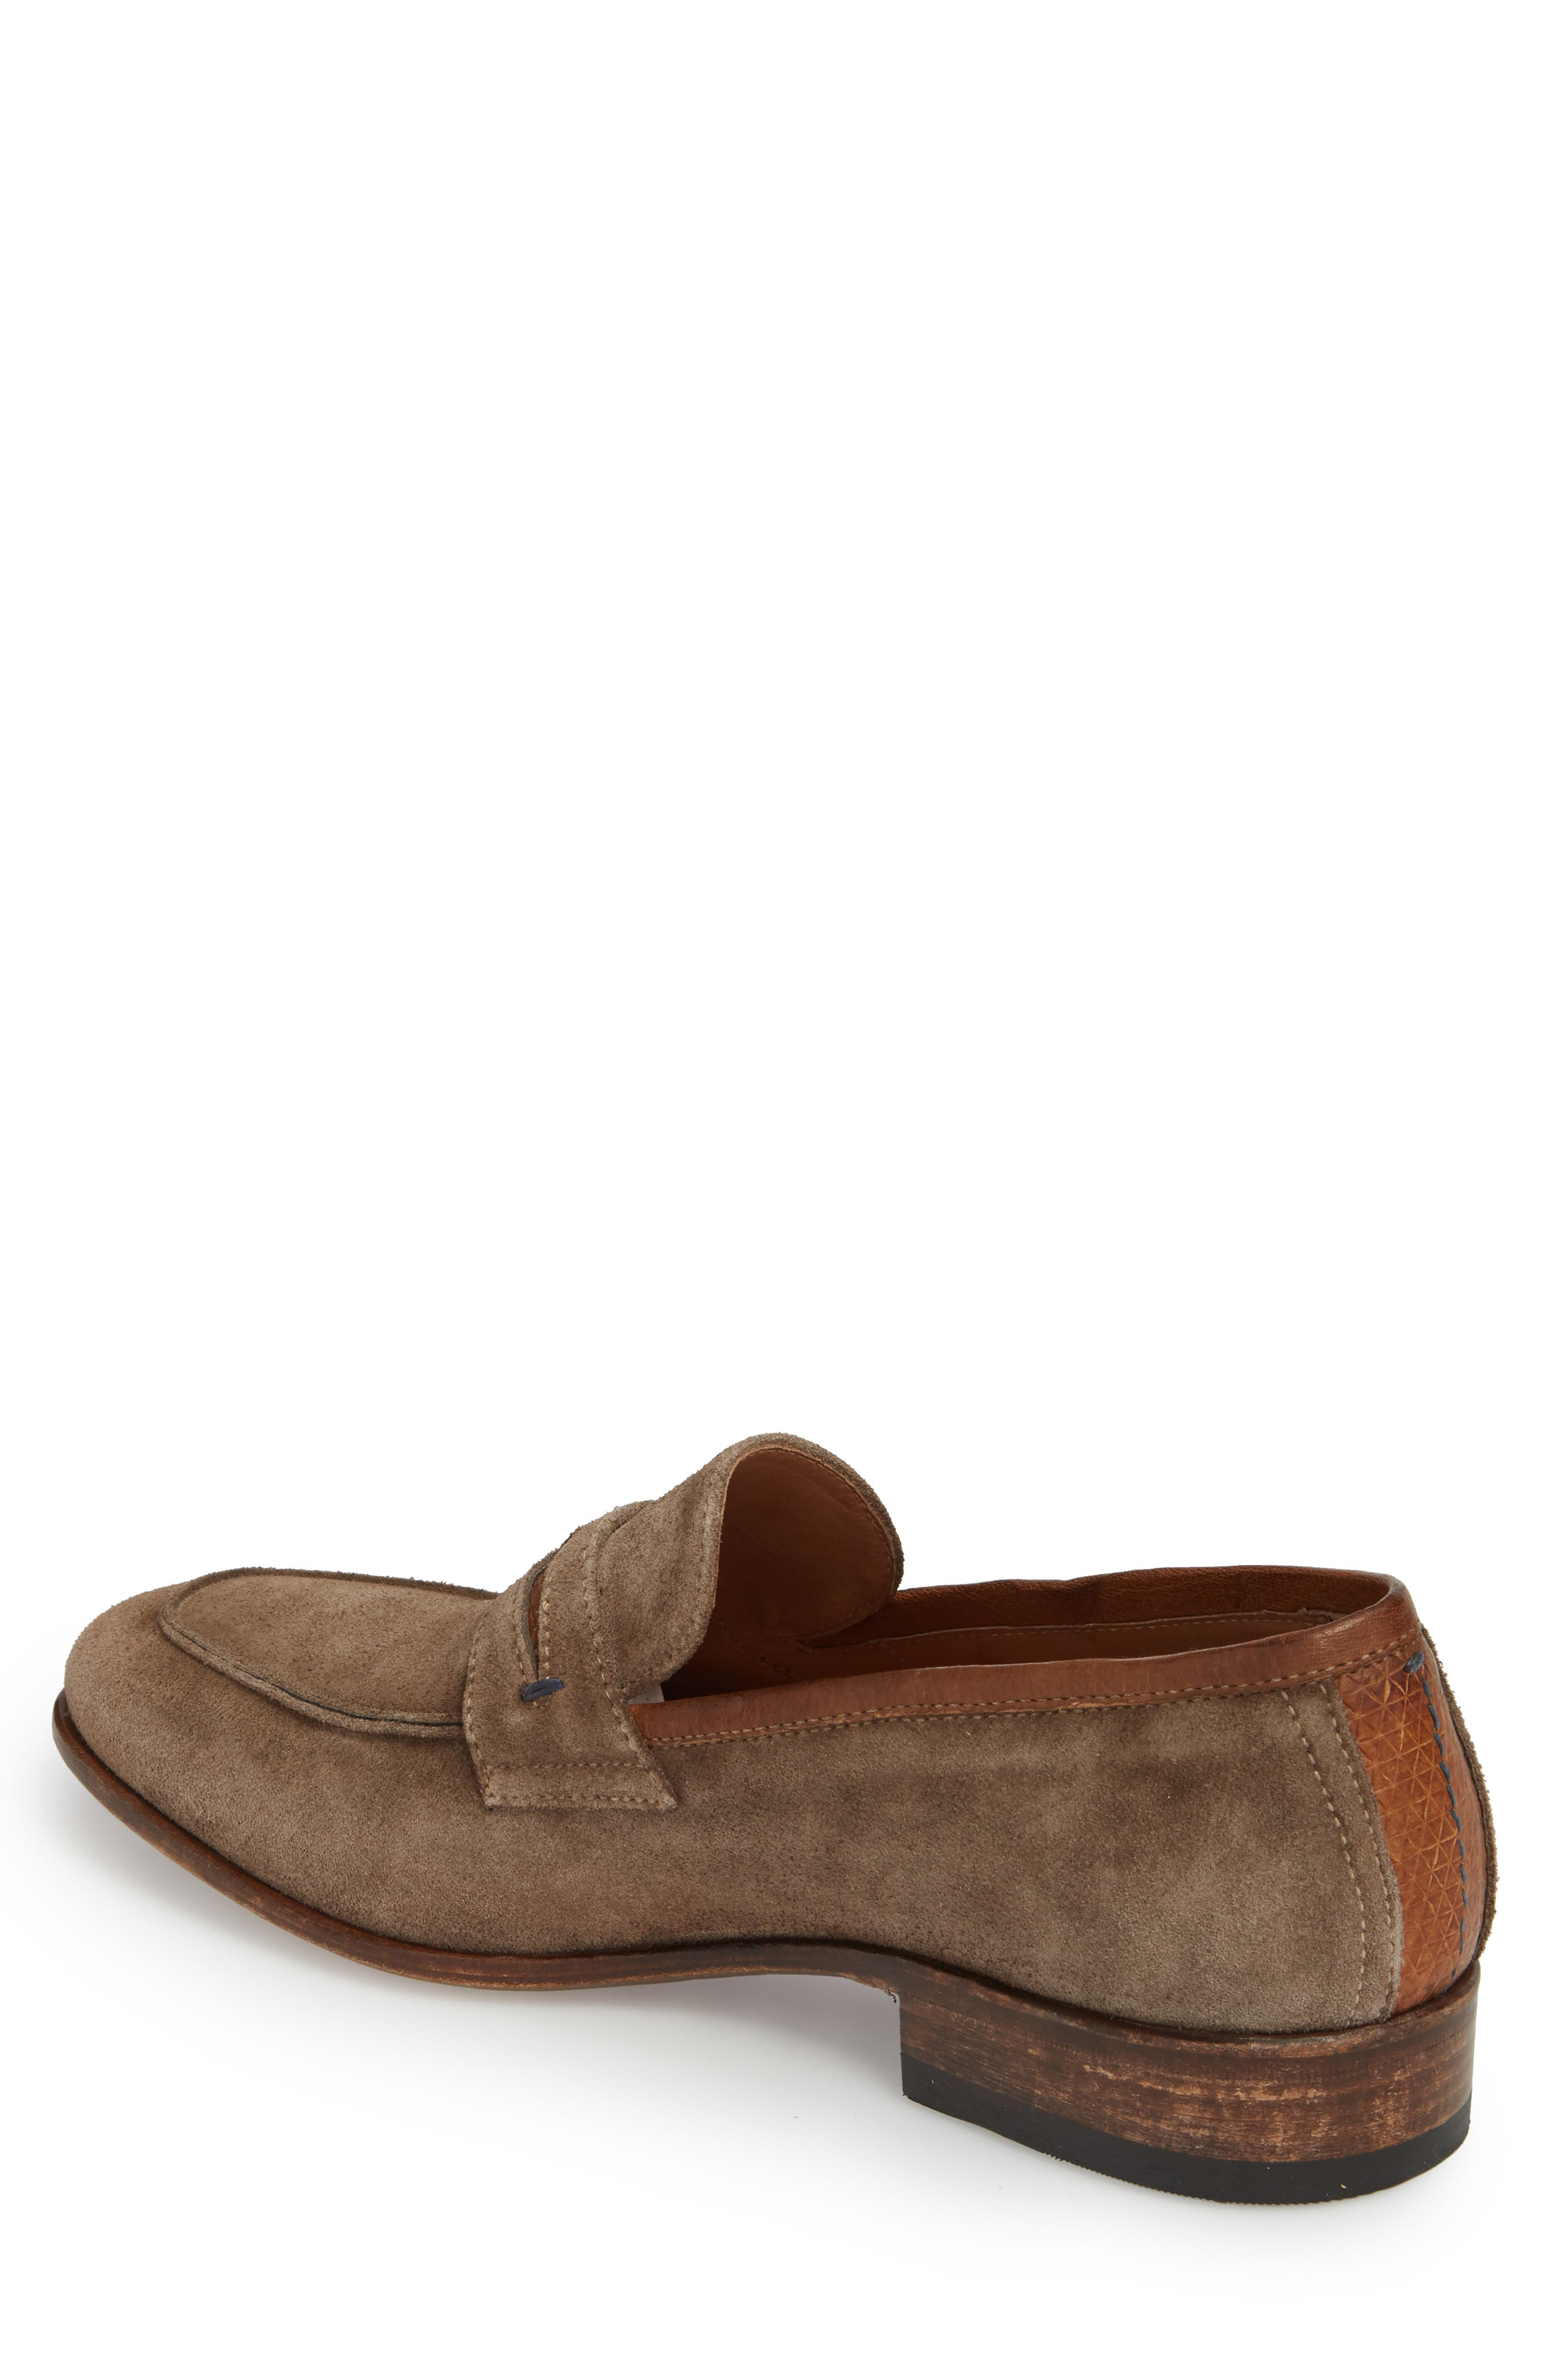 Lex Apron Toe Penny Loafer,                             Alternate thumbnail 3, color,